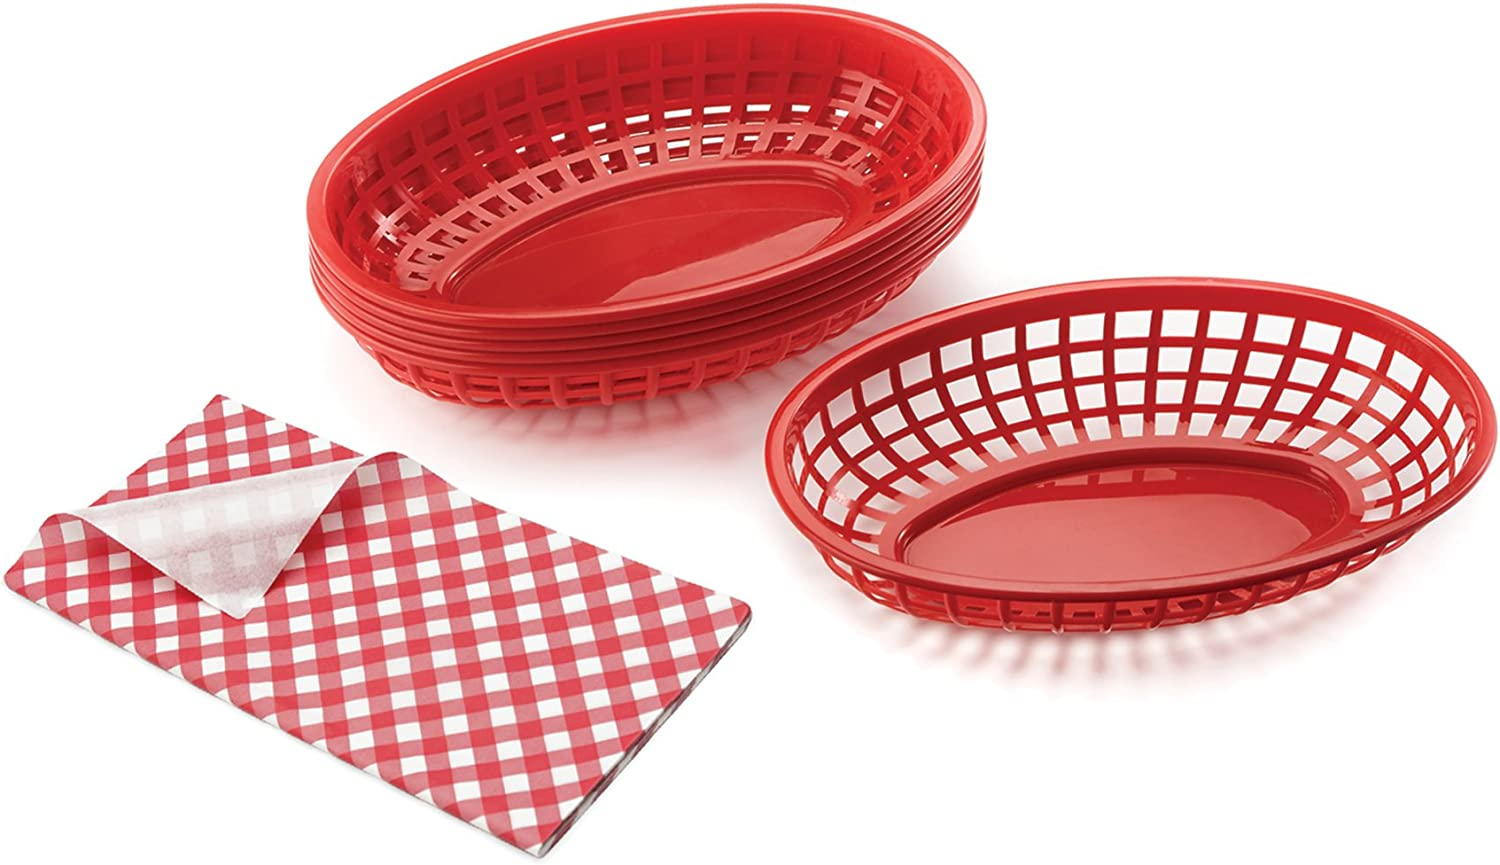 B2Q 76971 Pub Baskets with Red Liners, Set of 4 Baskets and 4 Liners